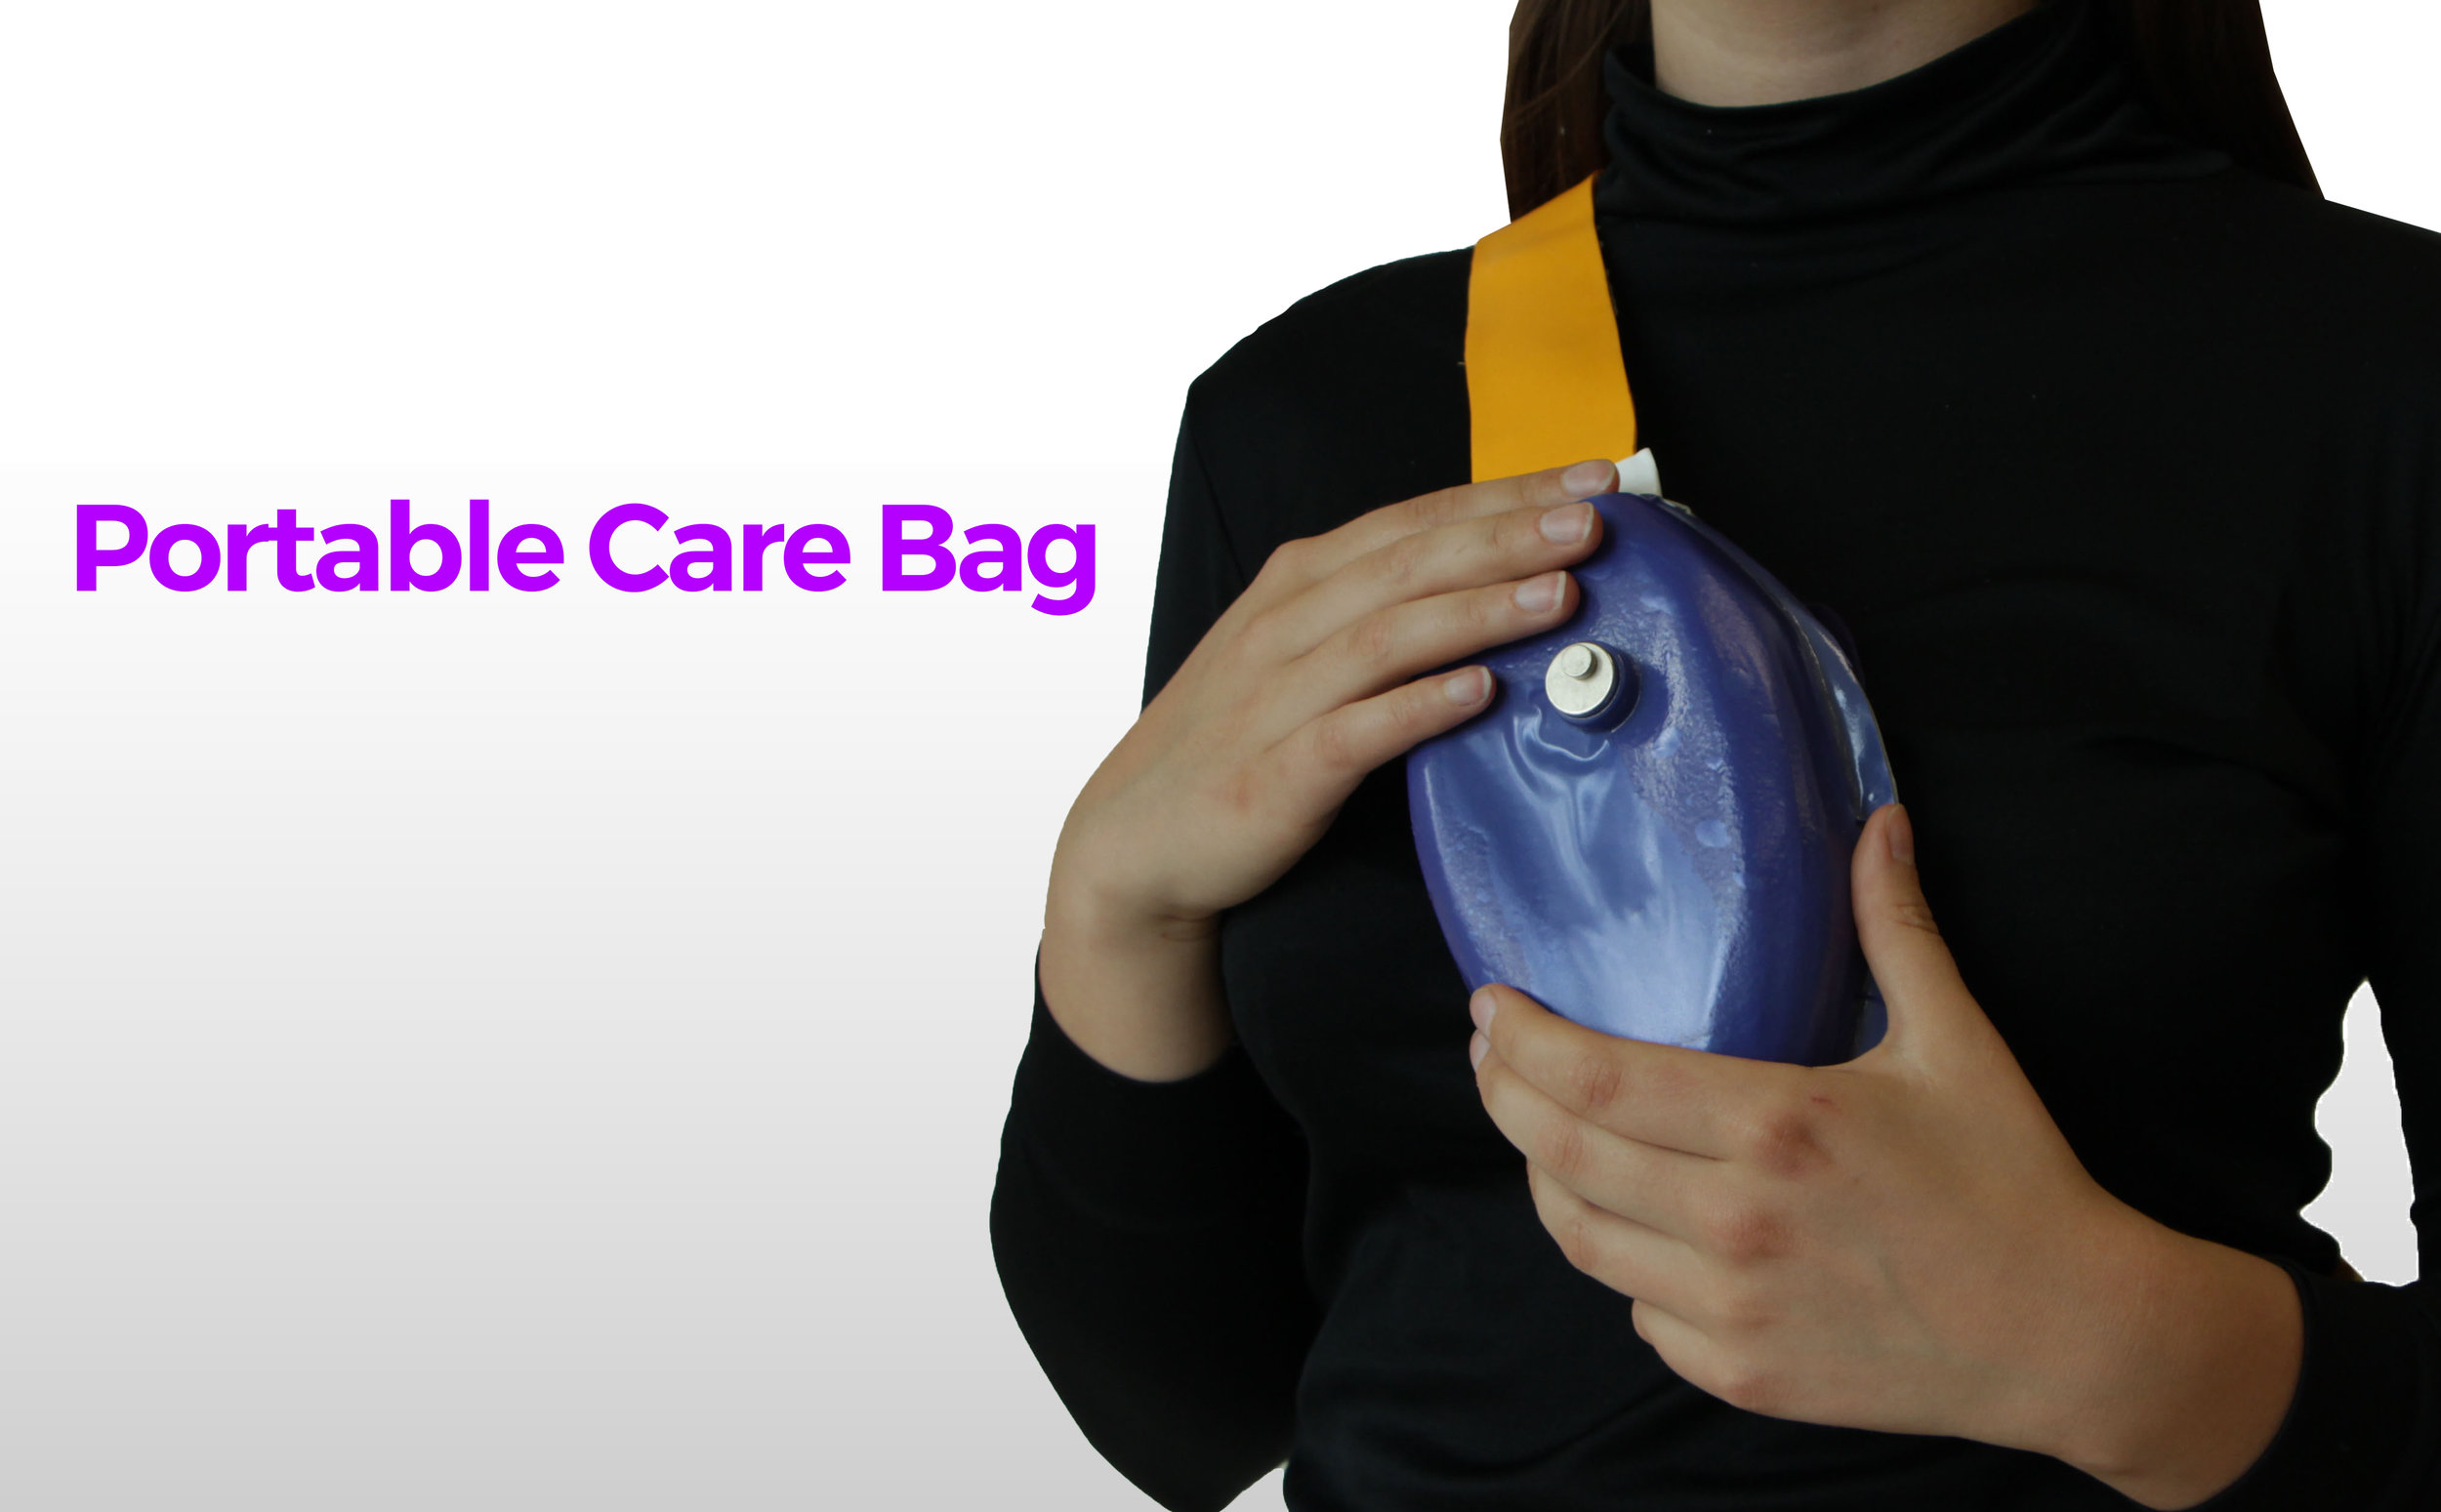 03_CAREBAG.jpg